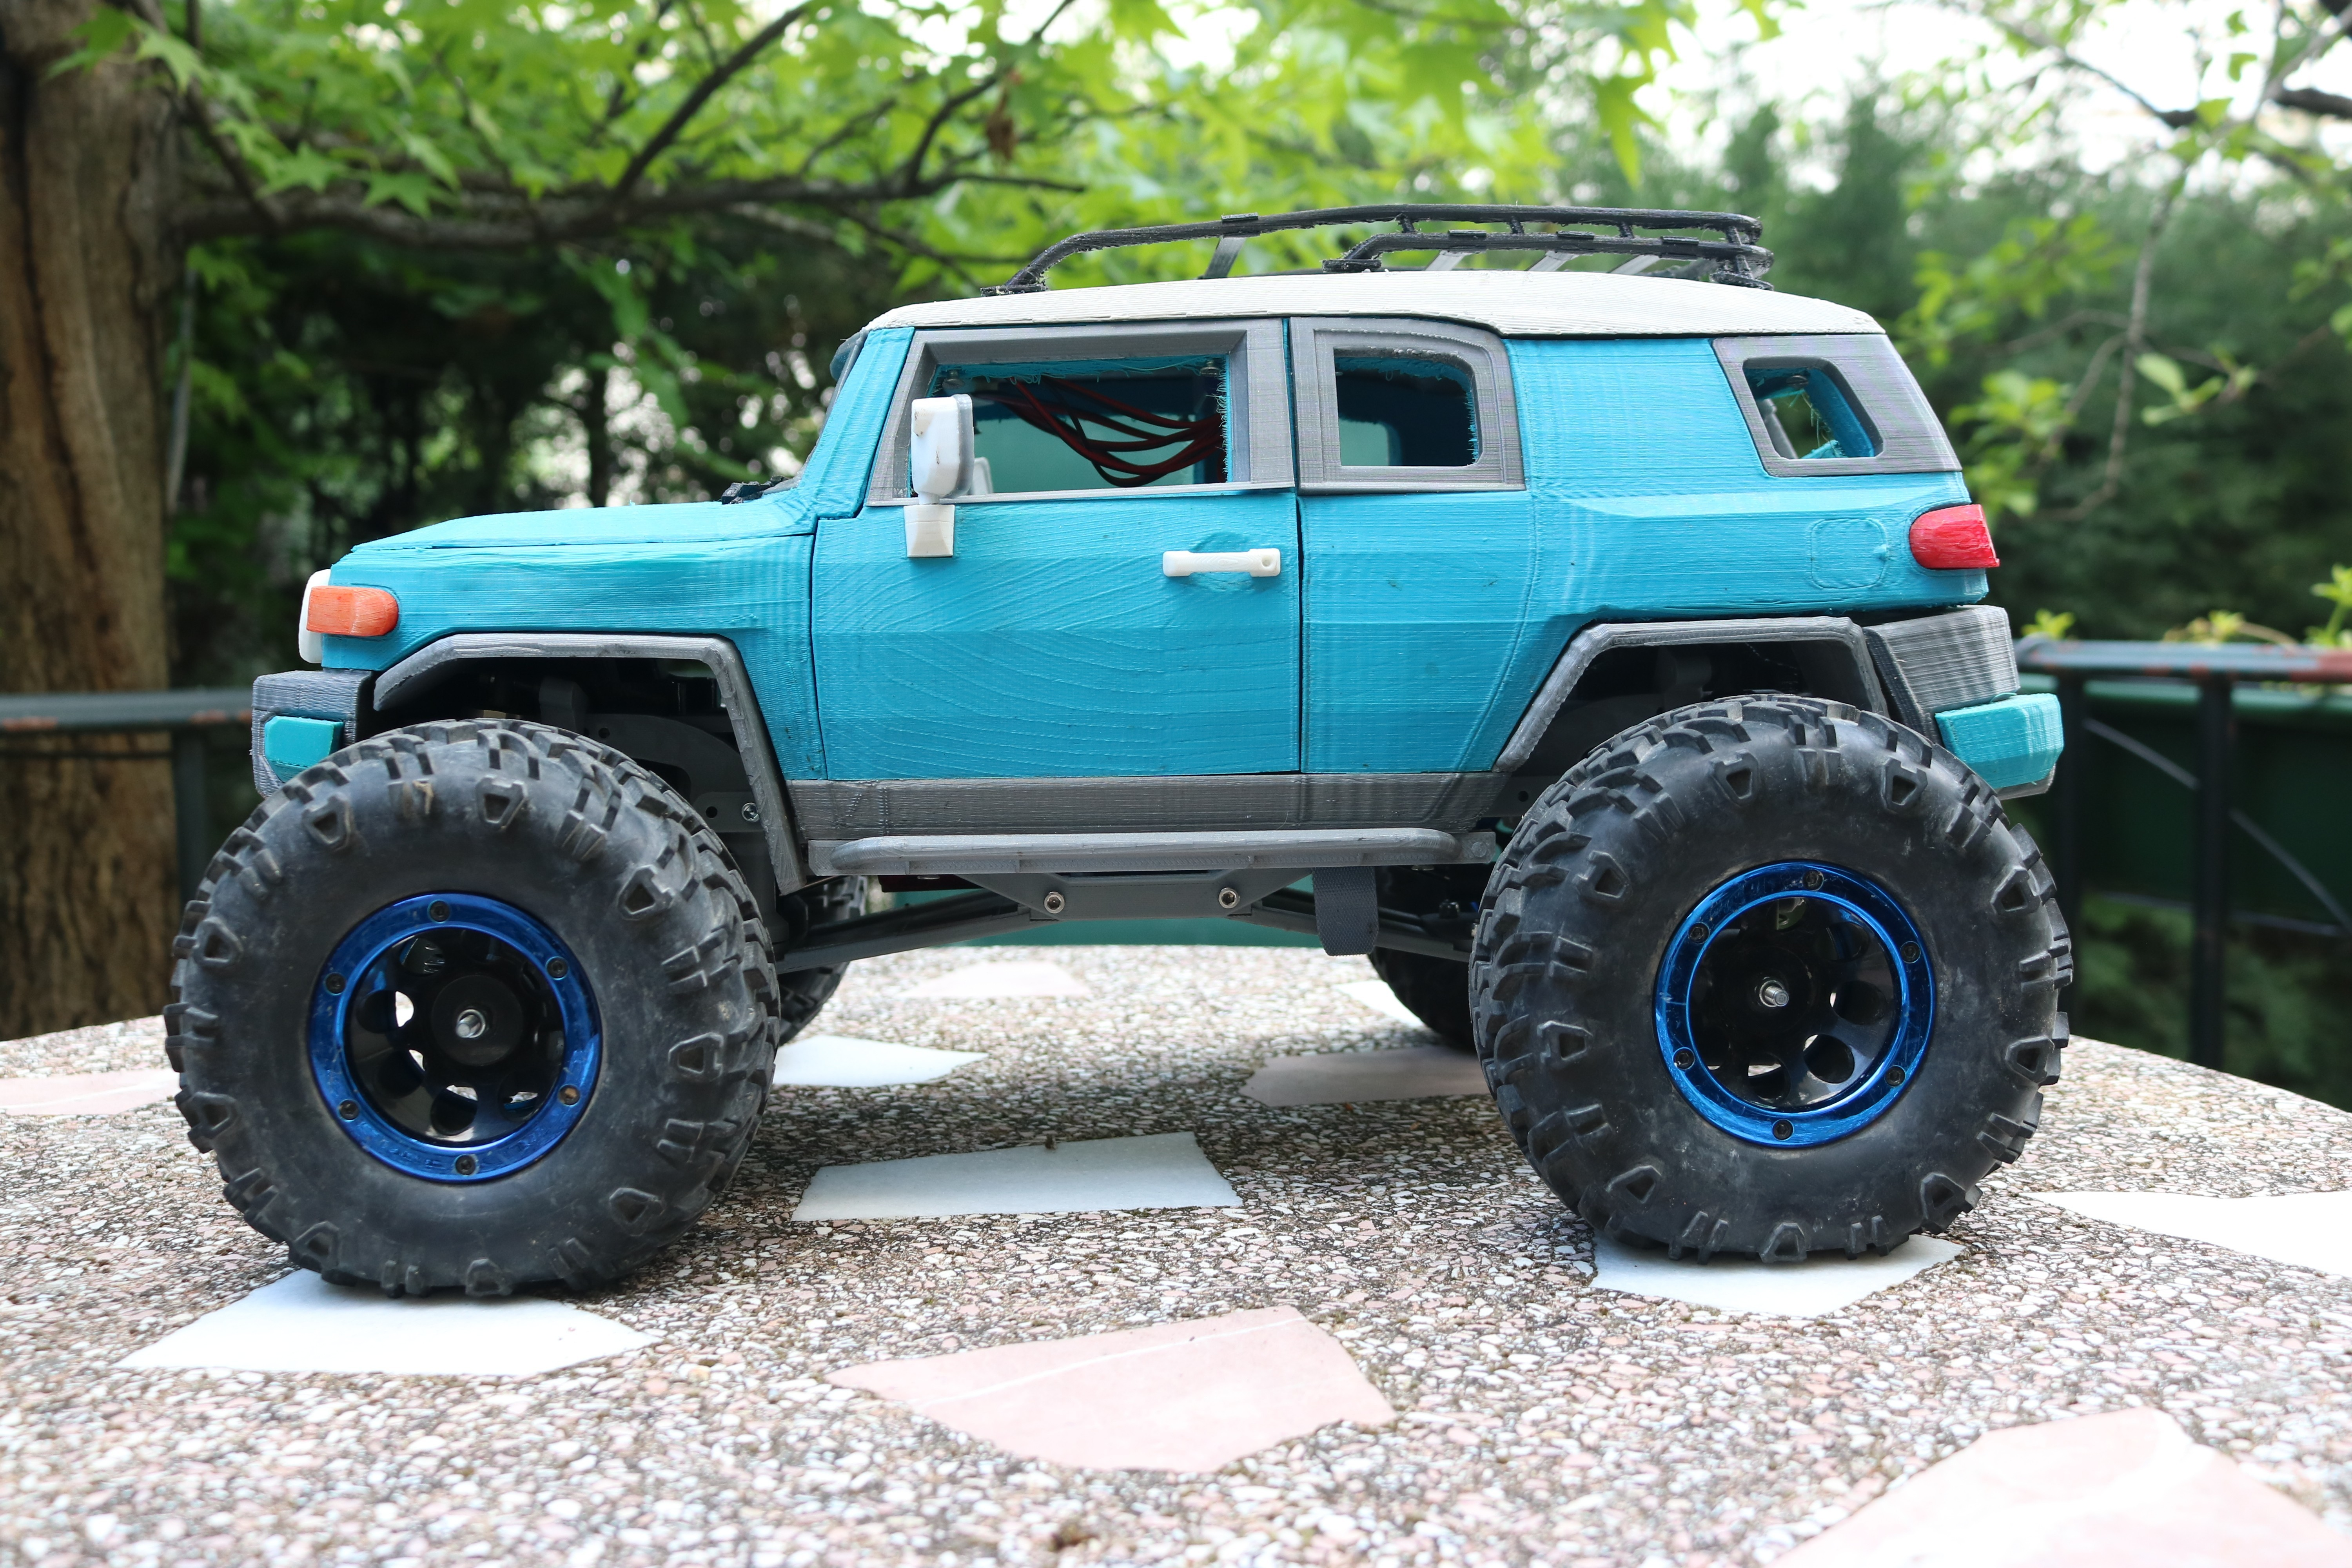 IMG_3683.JPG Download STL file MyRCCar 1/10 MTC Chassis Updated. Customizable chassis for Monster Truck, Crawler or Scale RC Car • 3D printer model, dlb5